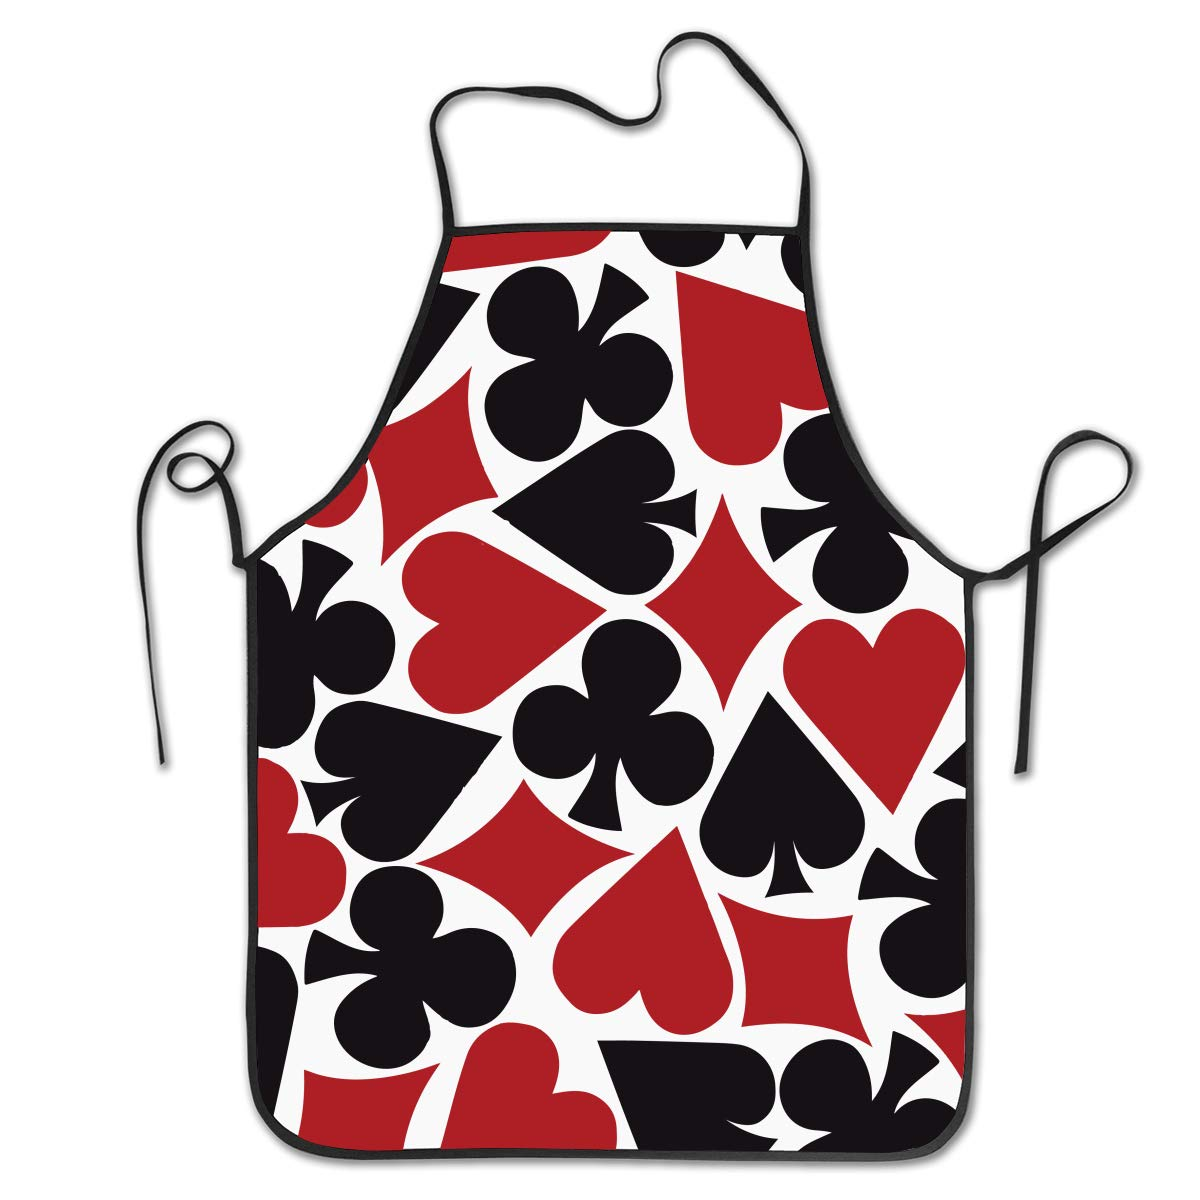 OKAYDECOR Novelty Waterproof Retro Kitchen BBQ Craft Bib Apron Dress for Women Men Poker Heart Square Pattern